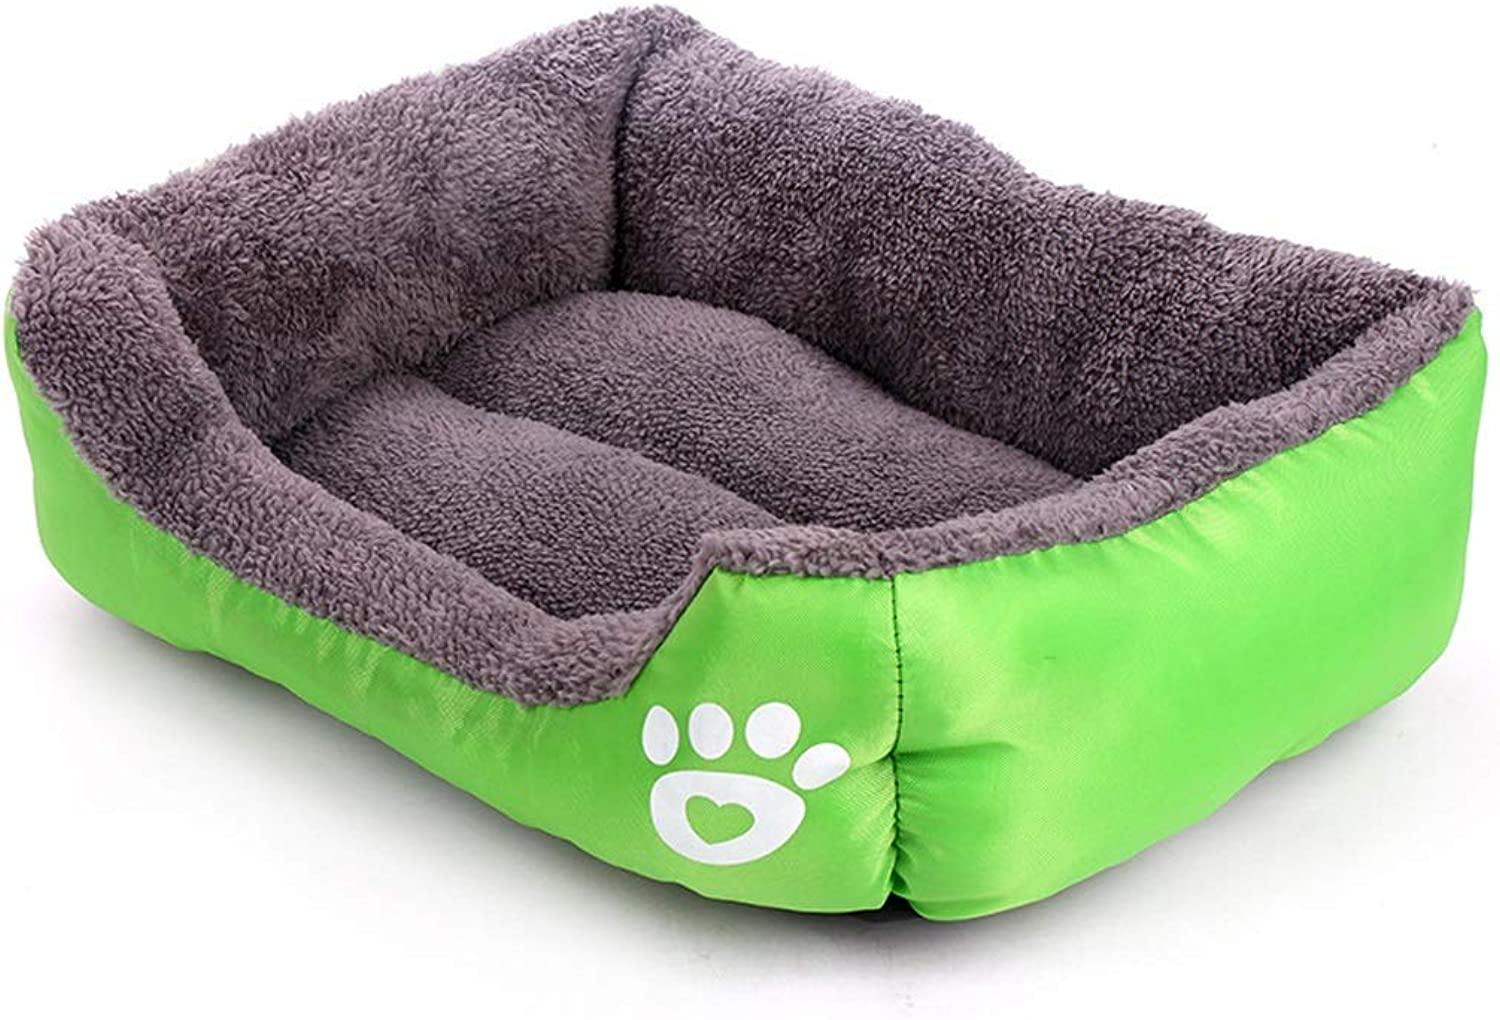 LZRZBH Candy color Footprint Pet Nest ,Dog Beds , Plush Pet Bed,Removable, Washable, Easy to Clean, Small and MediumSized Large Dogs (color   Green, Size   L 68  55  16cm)